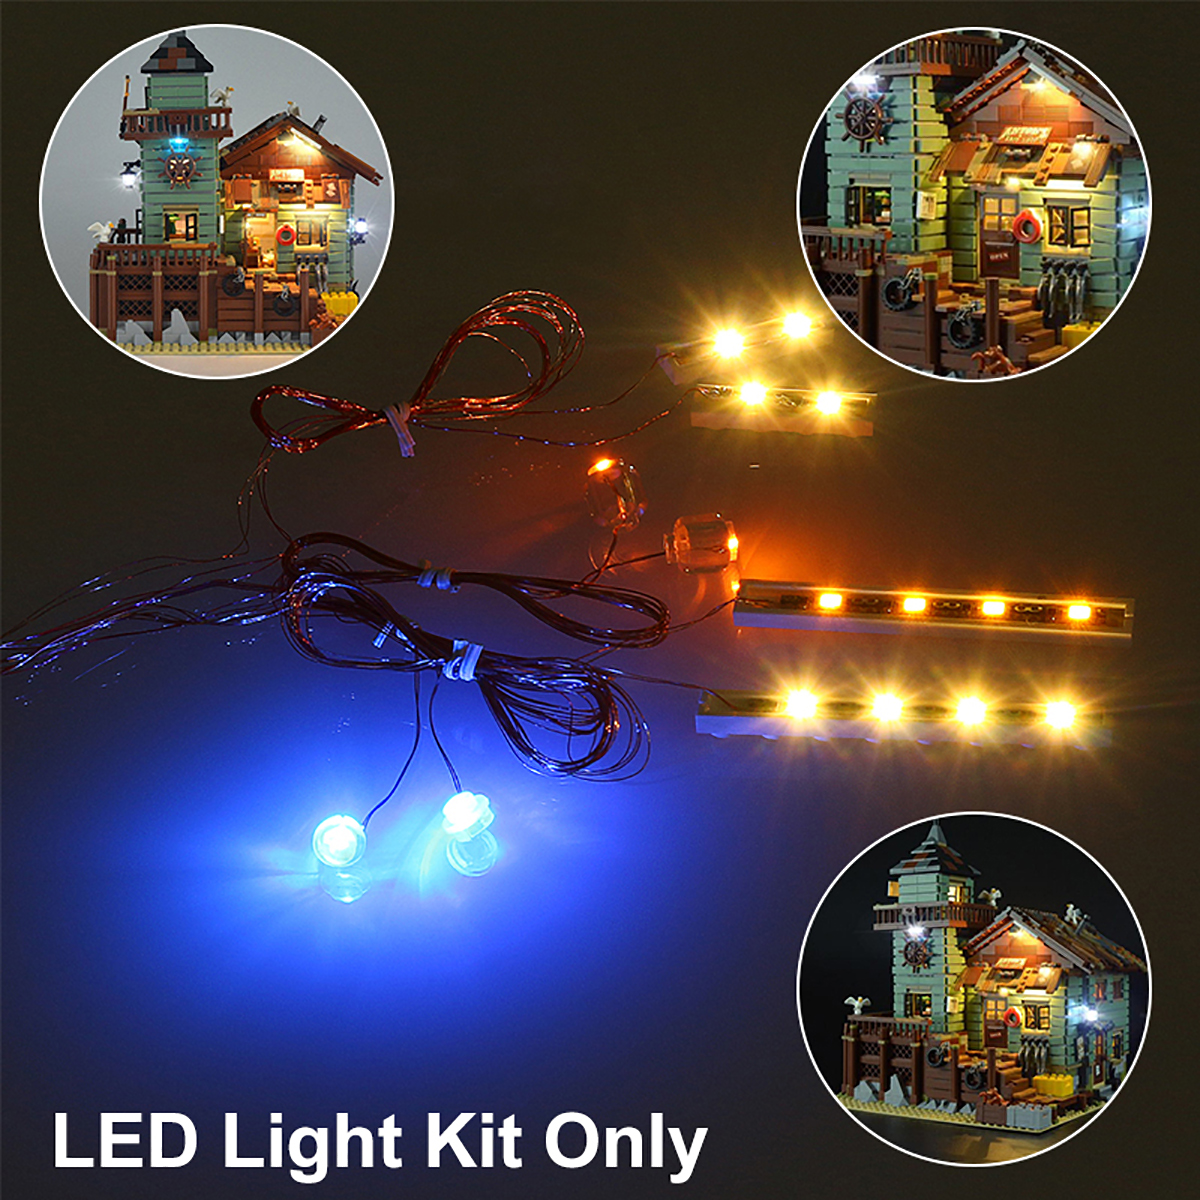 Light Up Kit For Lepin 16050 Old Fishing Store Building Model Light Parts For Blocks Toy Dollhouse